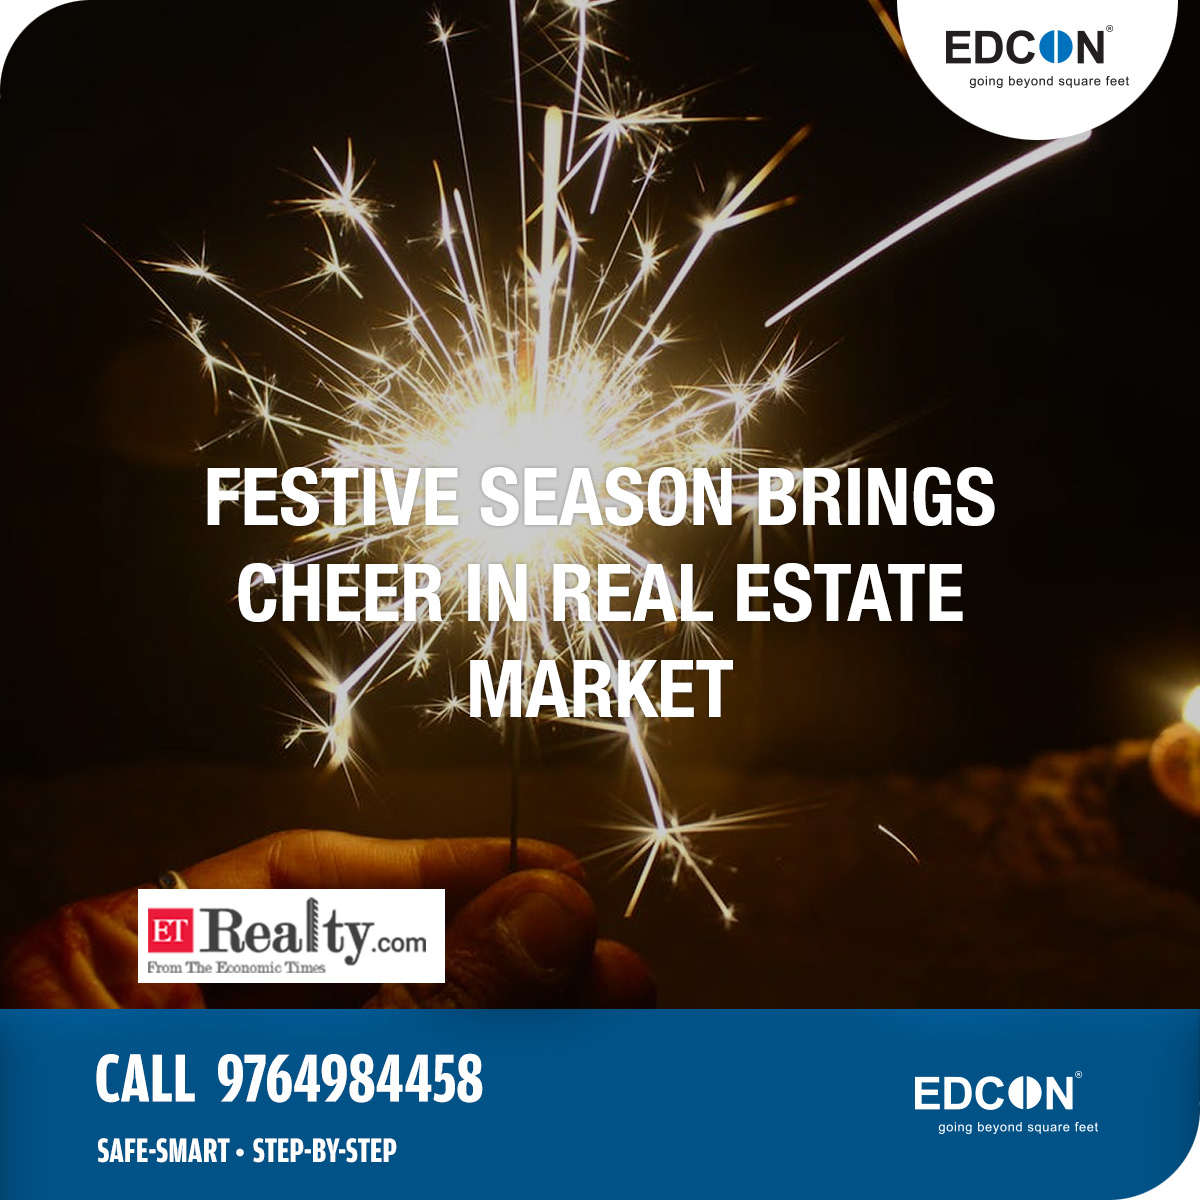 Festive season brings cheer in real estate market